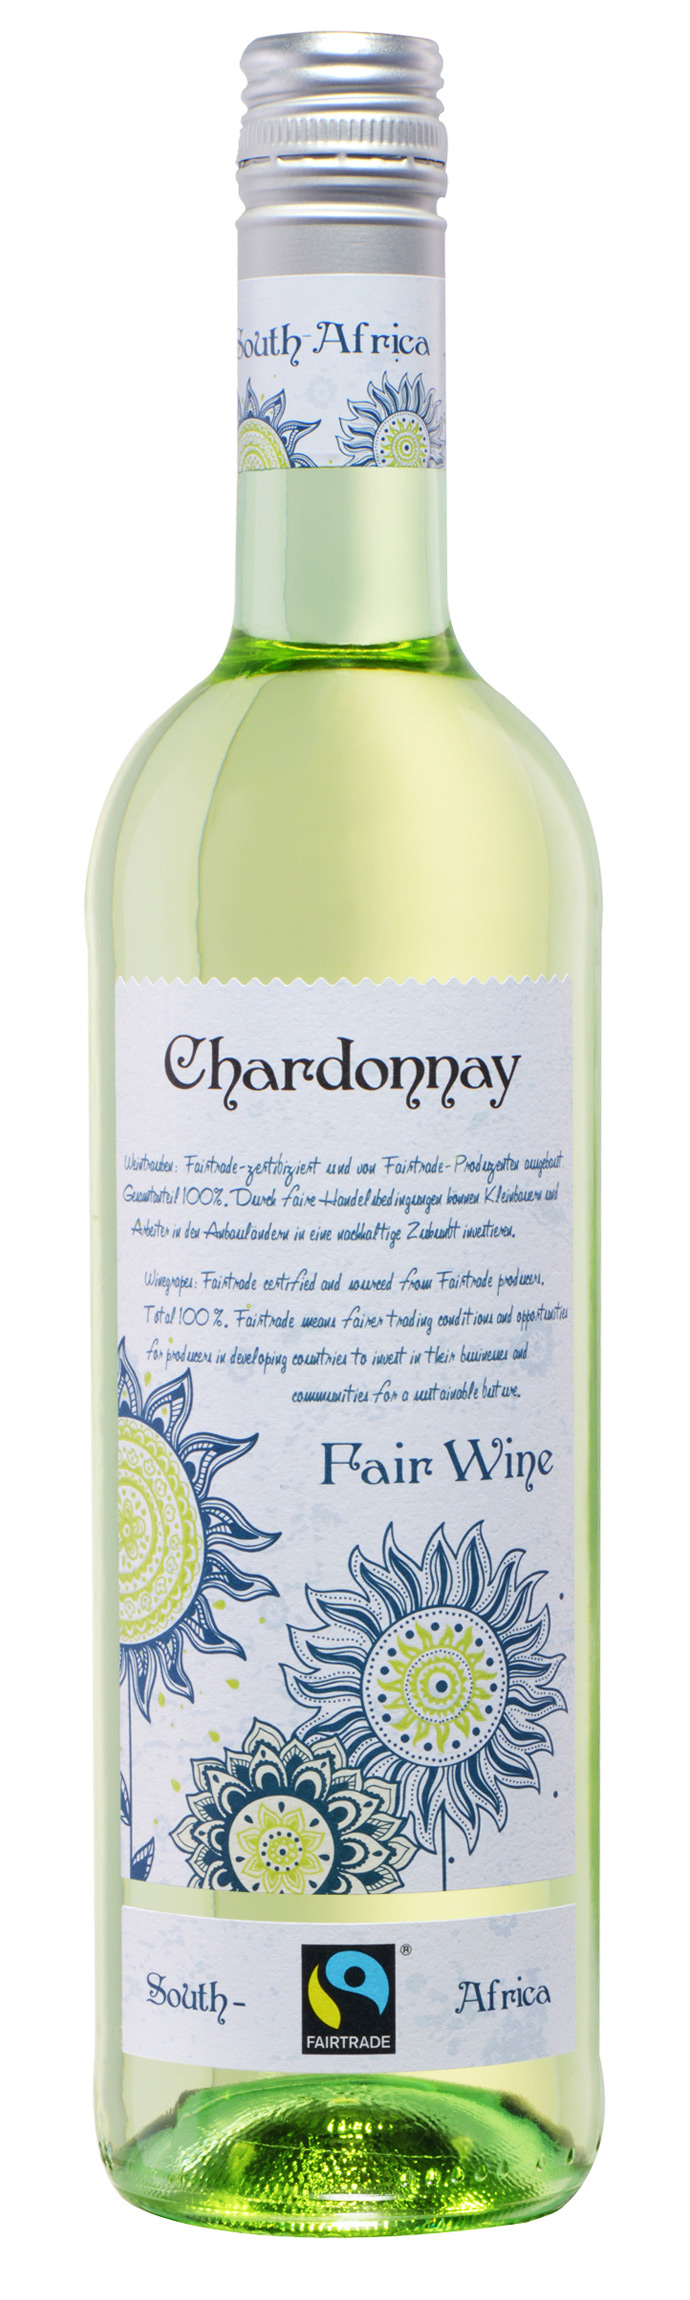 Fair Wine Chardonnay